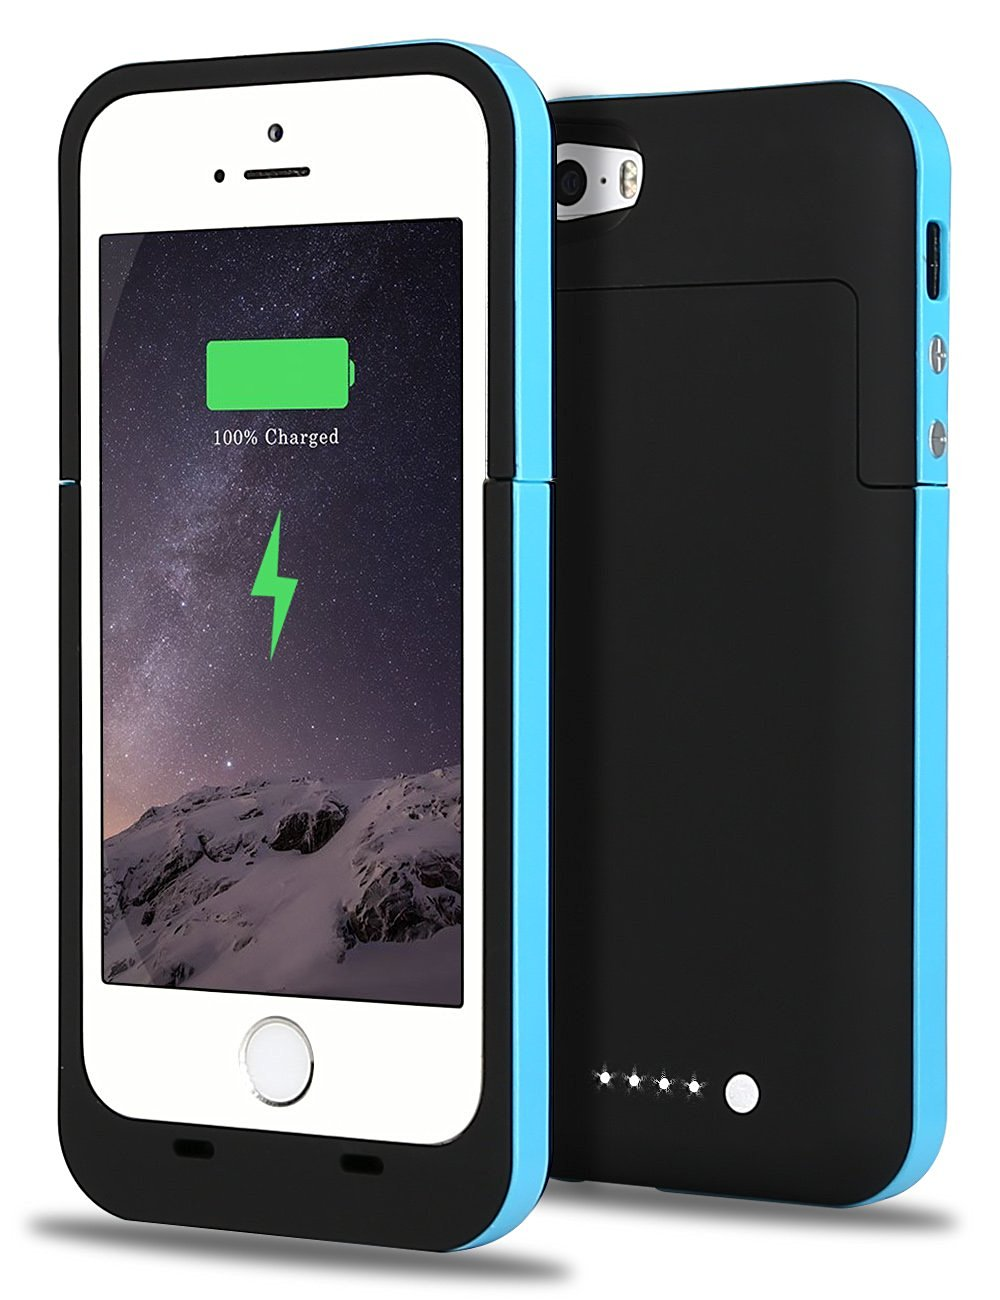 save off 25e35 a4217 iPhone 5S Battery Case, iPhone SE Battery Case, JIUNAI iPhone 5S Portable  Charger Recharge External Power Bank Charging Case 2500 mAh Battery Backup  ...